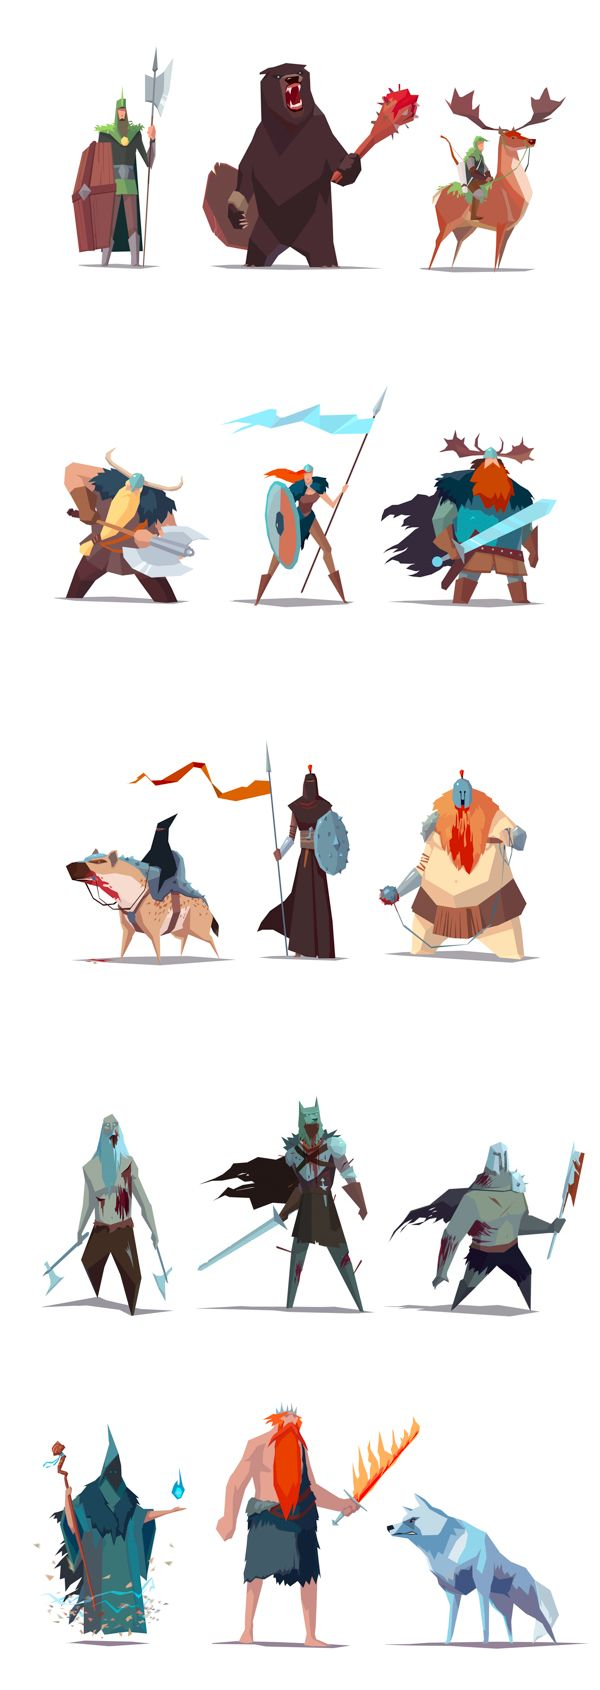 RTS game - Visual Development by Ariel Belinco ★ || *Please support the artists and studios featured here by buying this and other artworks in their official online stores • Find us on www.facebook.com/CharacterDesignReferences | www.pinterest.com/characterdesigh | www.characterdesignreferences.tumblr.com |  www.youtube.com/user/CharacterDesignTV and learn more about #concept #art #animation #anime #comics || ★